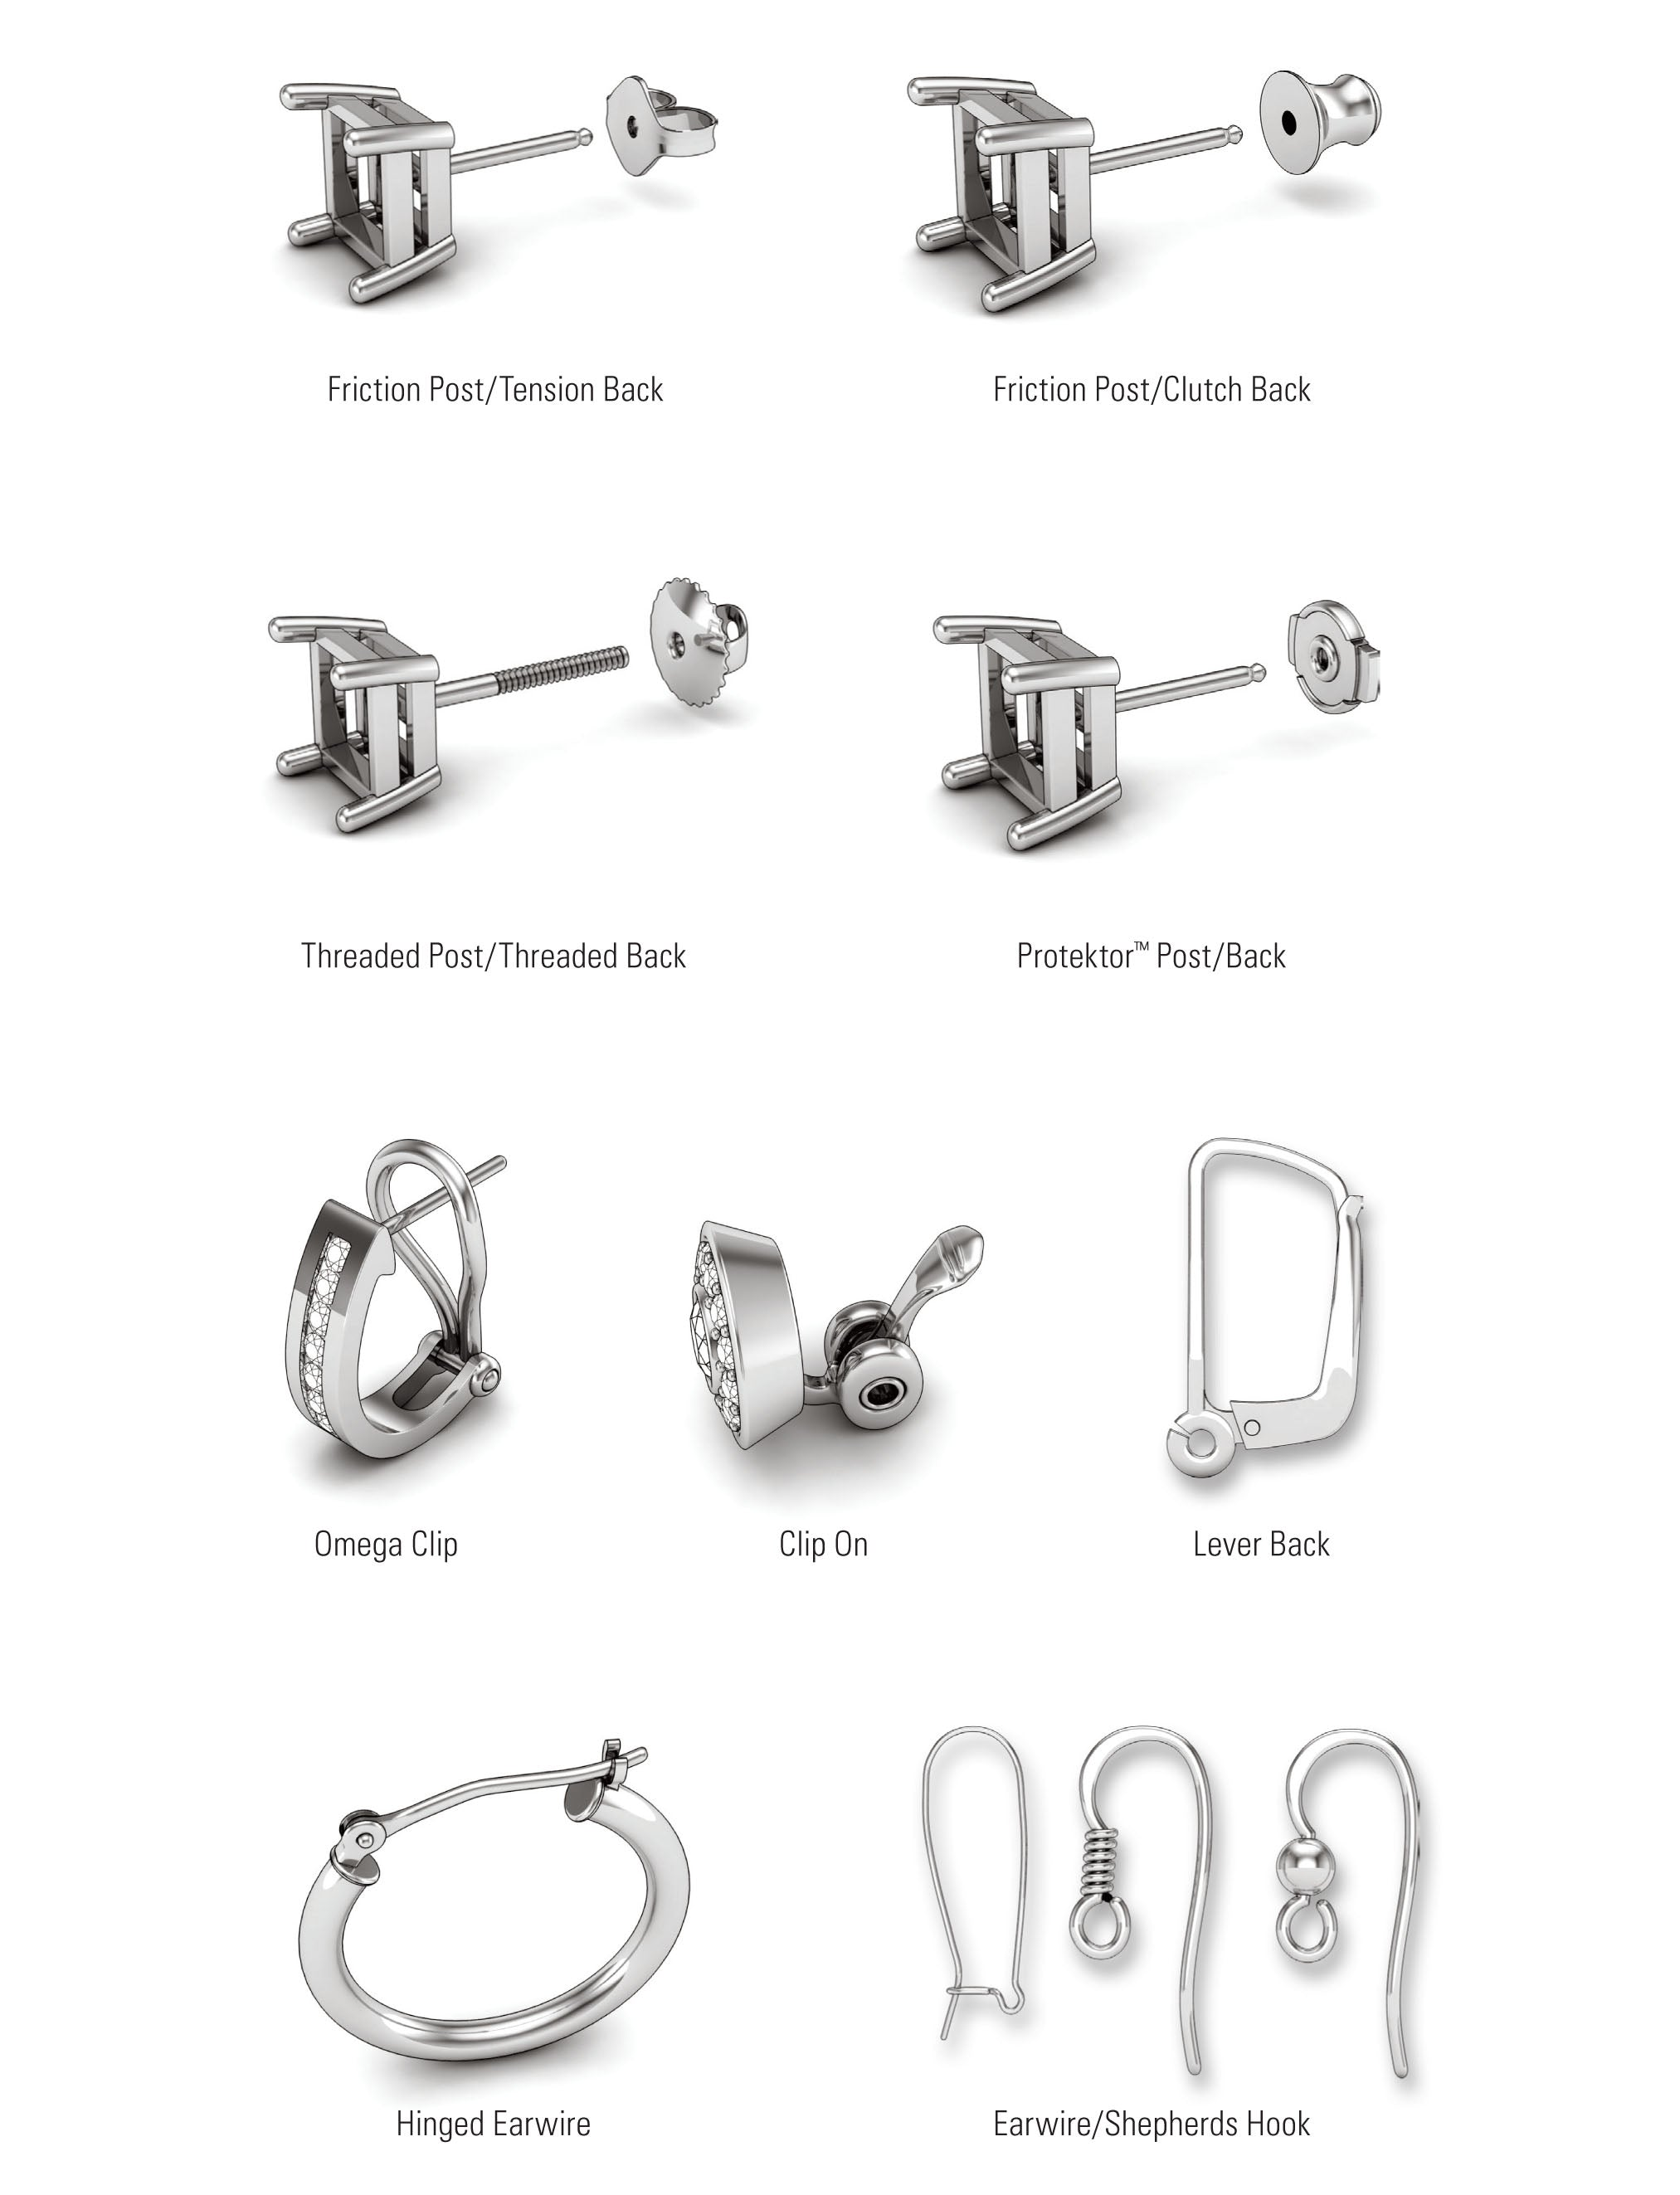 Types of Earring Backs at The Black Bow Jewelry Company include tension back, clutch back, threaded back, post back, omega clip, clip ons, lever back, hinged, earwire, shepards hook and french wires.